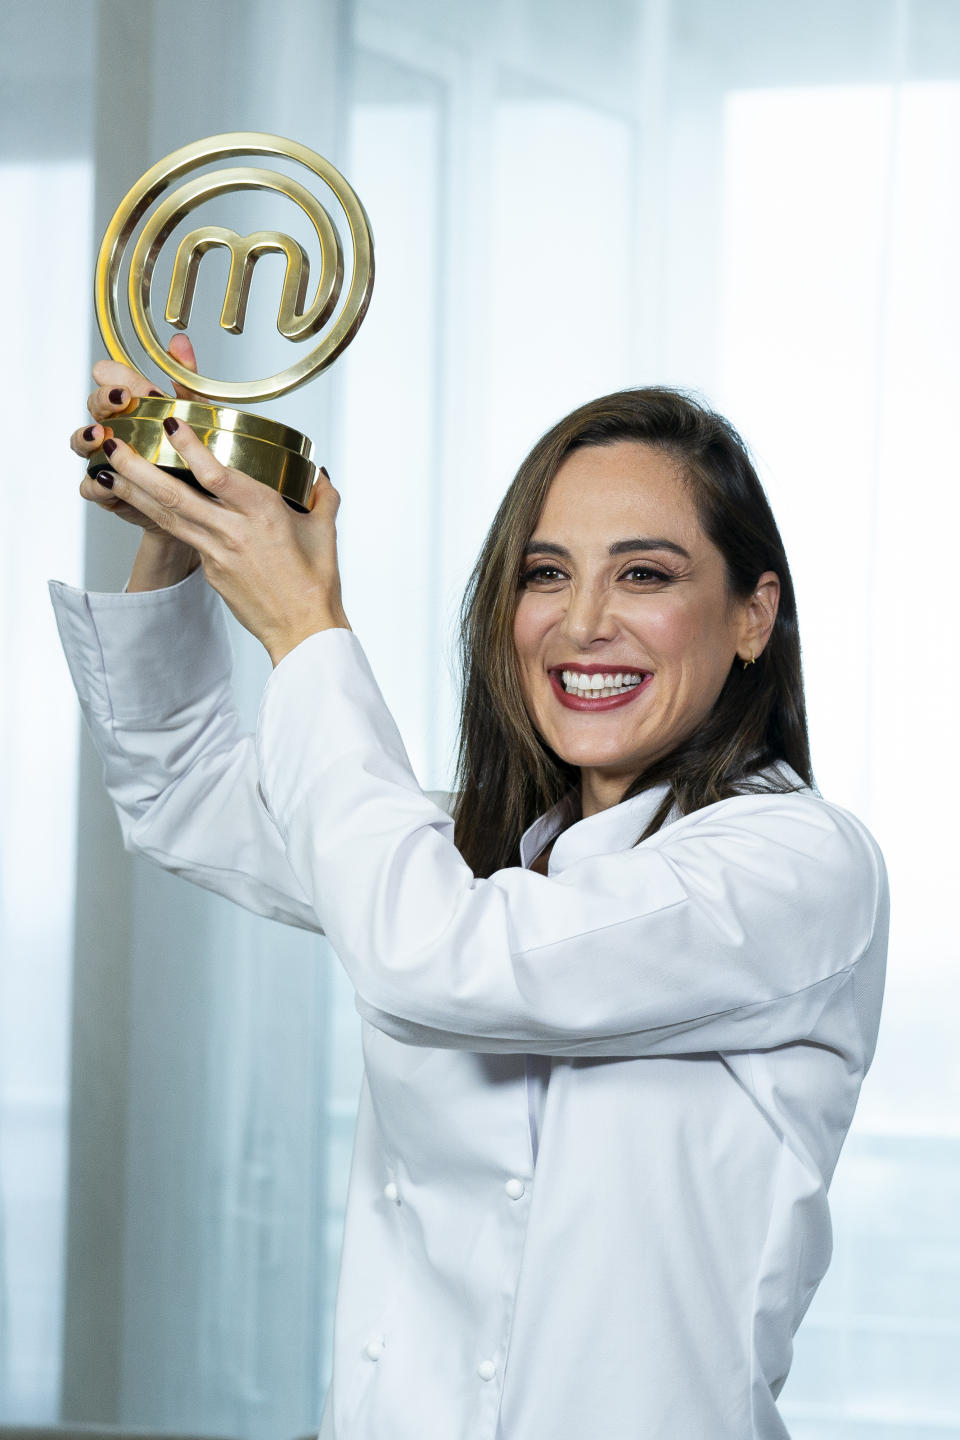 Tamara Falco, the winner of TV's MasterChef Celebrity 2019, poses for a photo session at Hotel Eurobuilding on November 28, 2019 in Madrid, Spain.  (Photo by Oscar Gonzalez/NurPhoto via Getty Images)